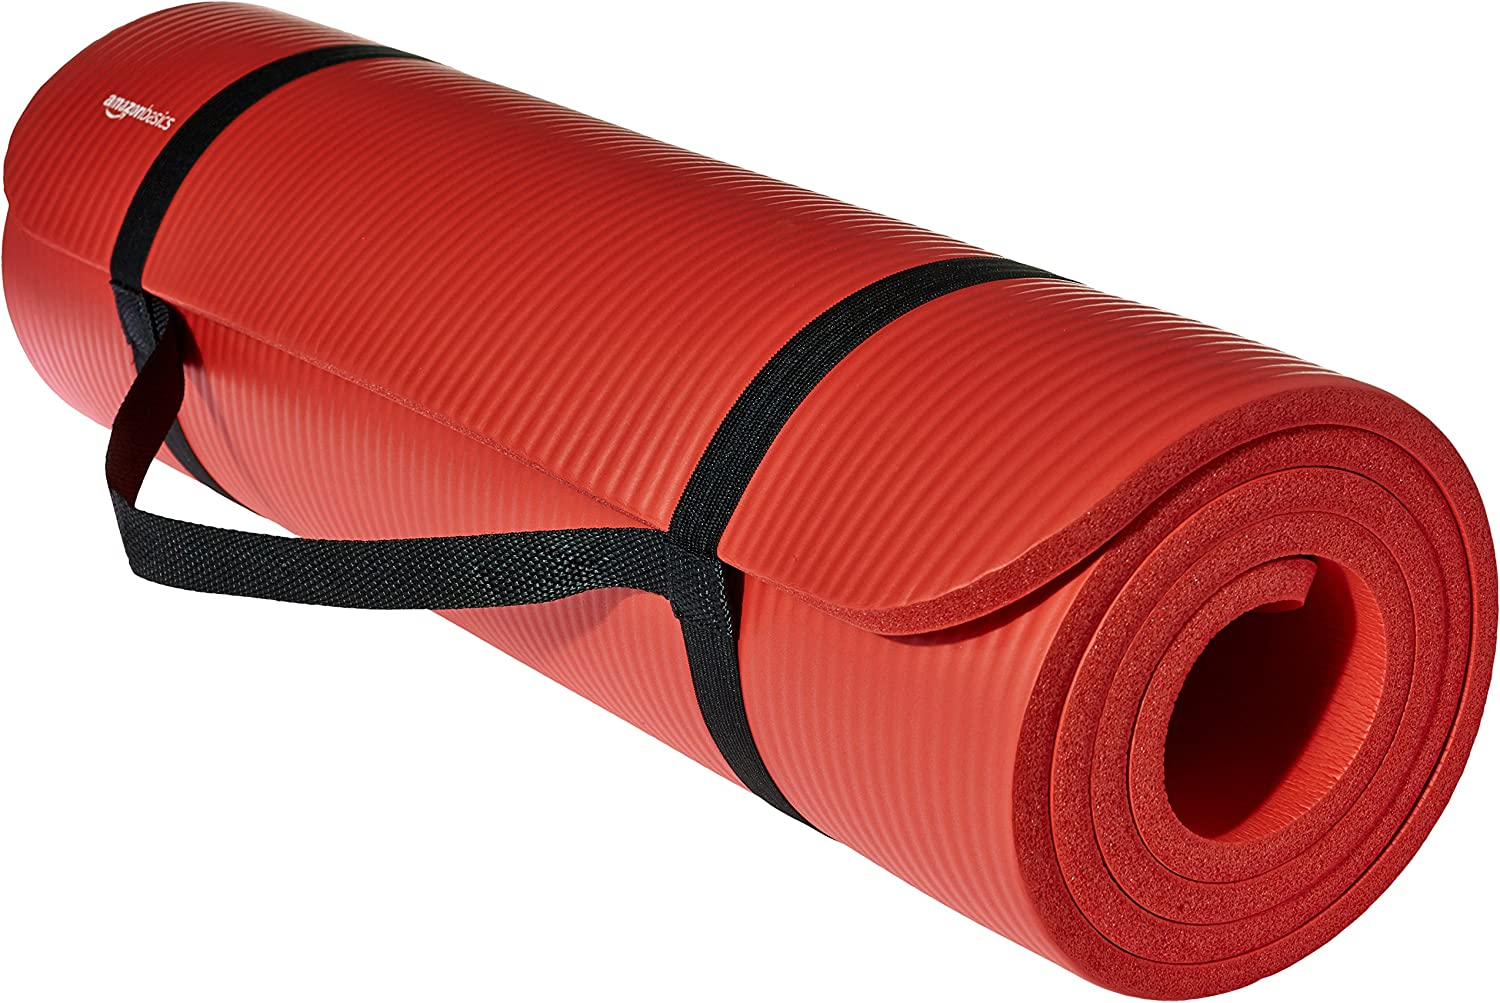 Basics Extra Thick Exercise Yoga Gym Floor Mat with Carrying Strap - 74 x 24 x .5 Inches, Black : Sports & Outdoors